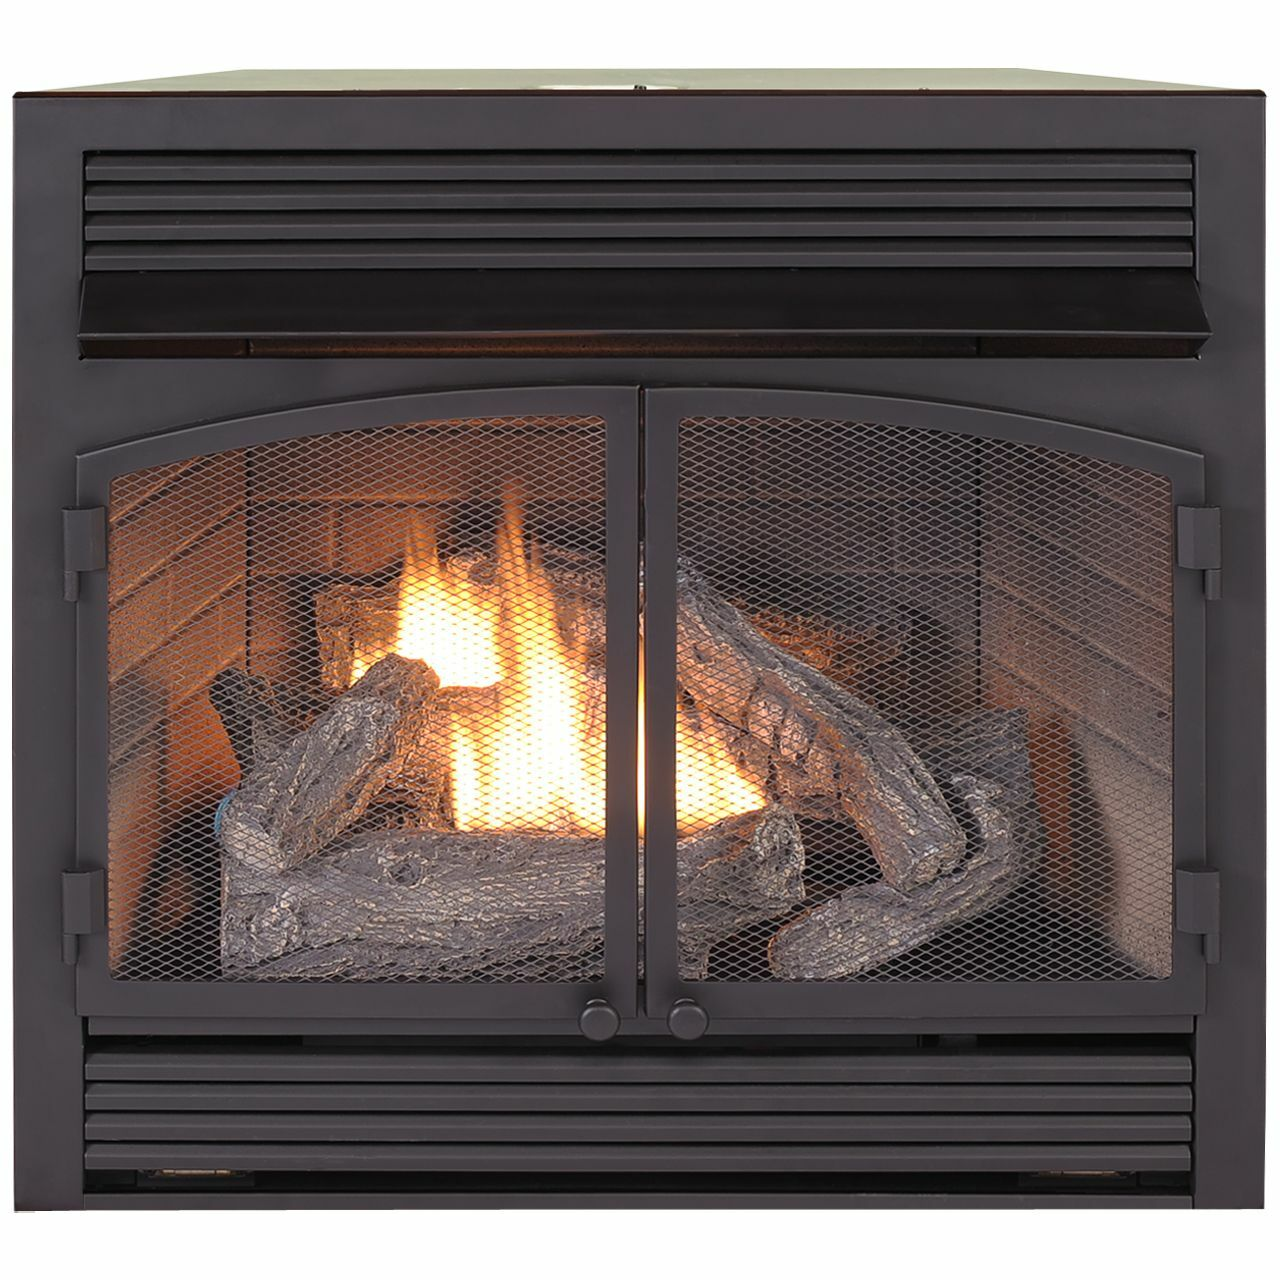 Duluth forge fireplace insert fdf400rt zc